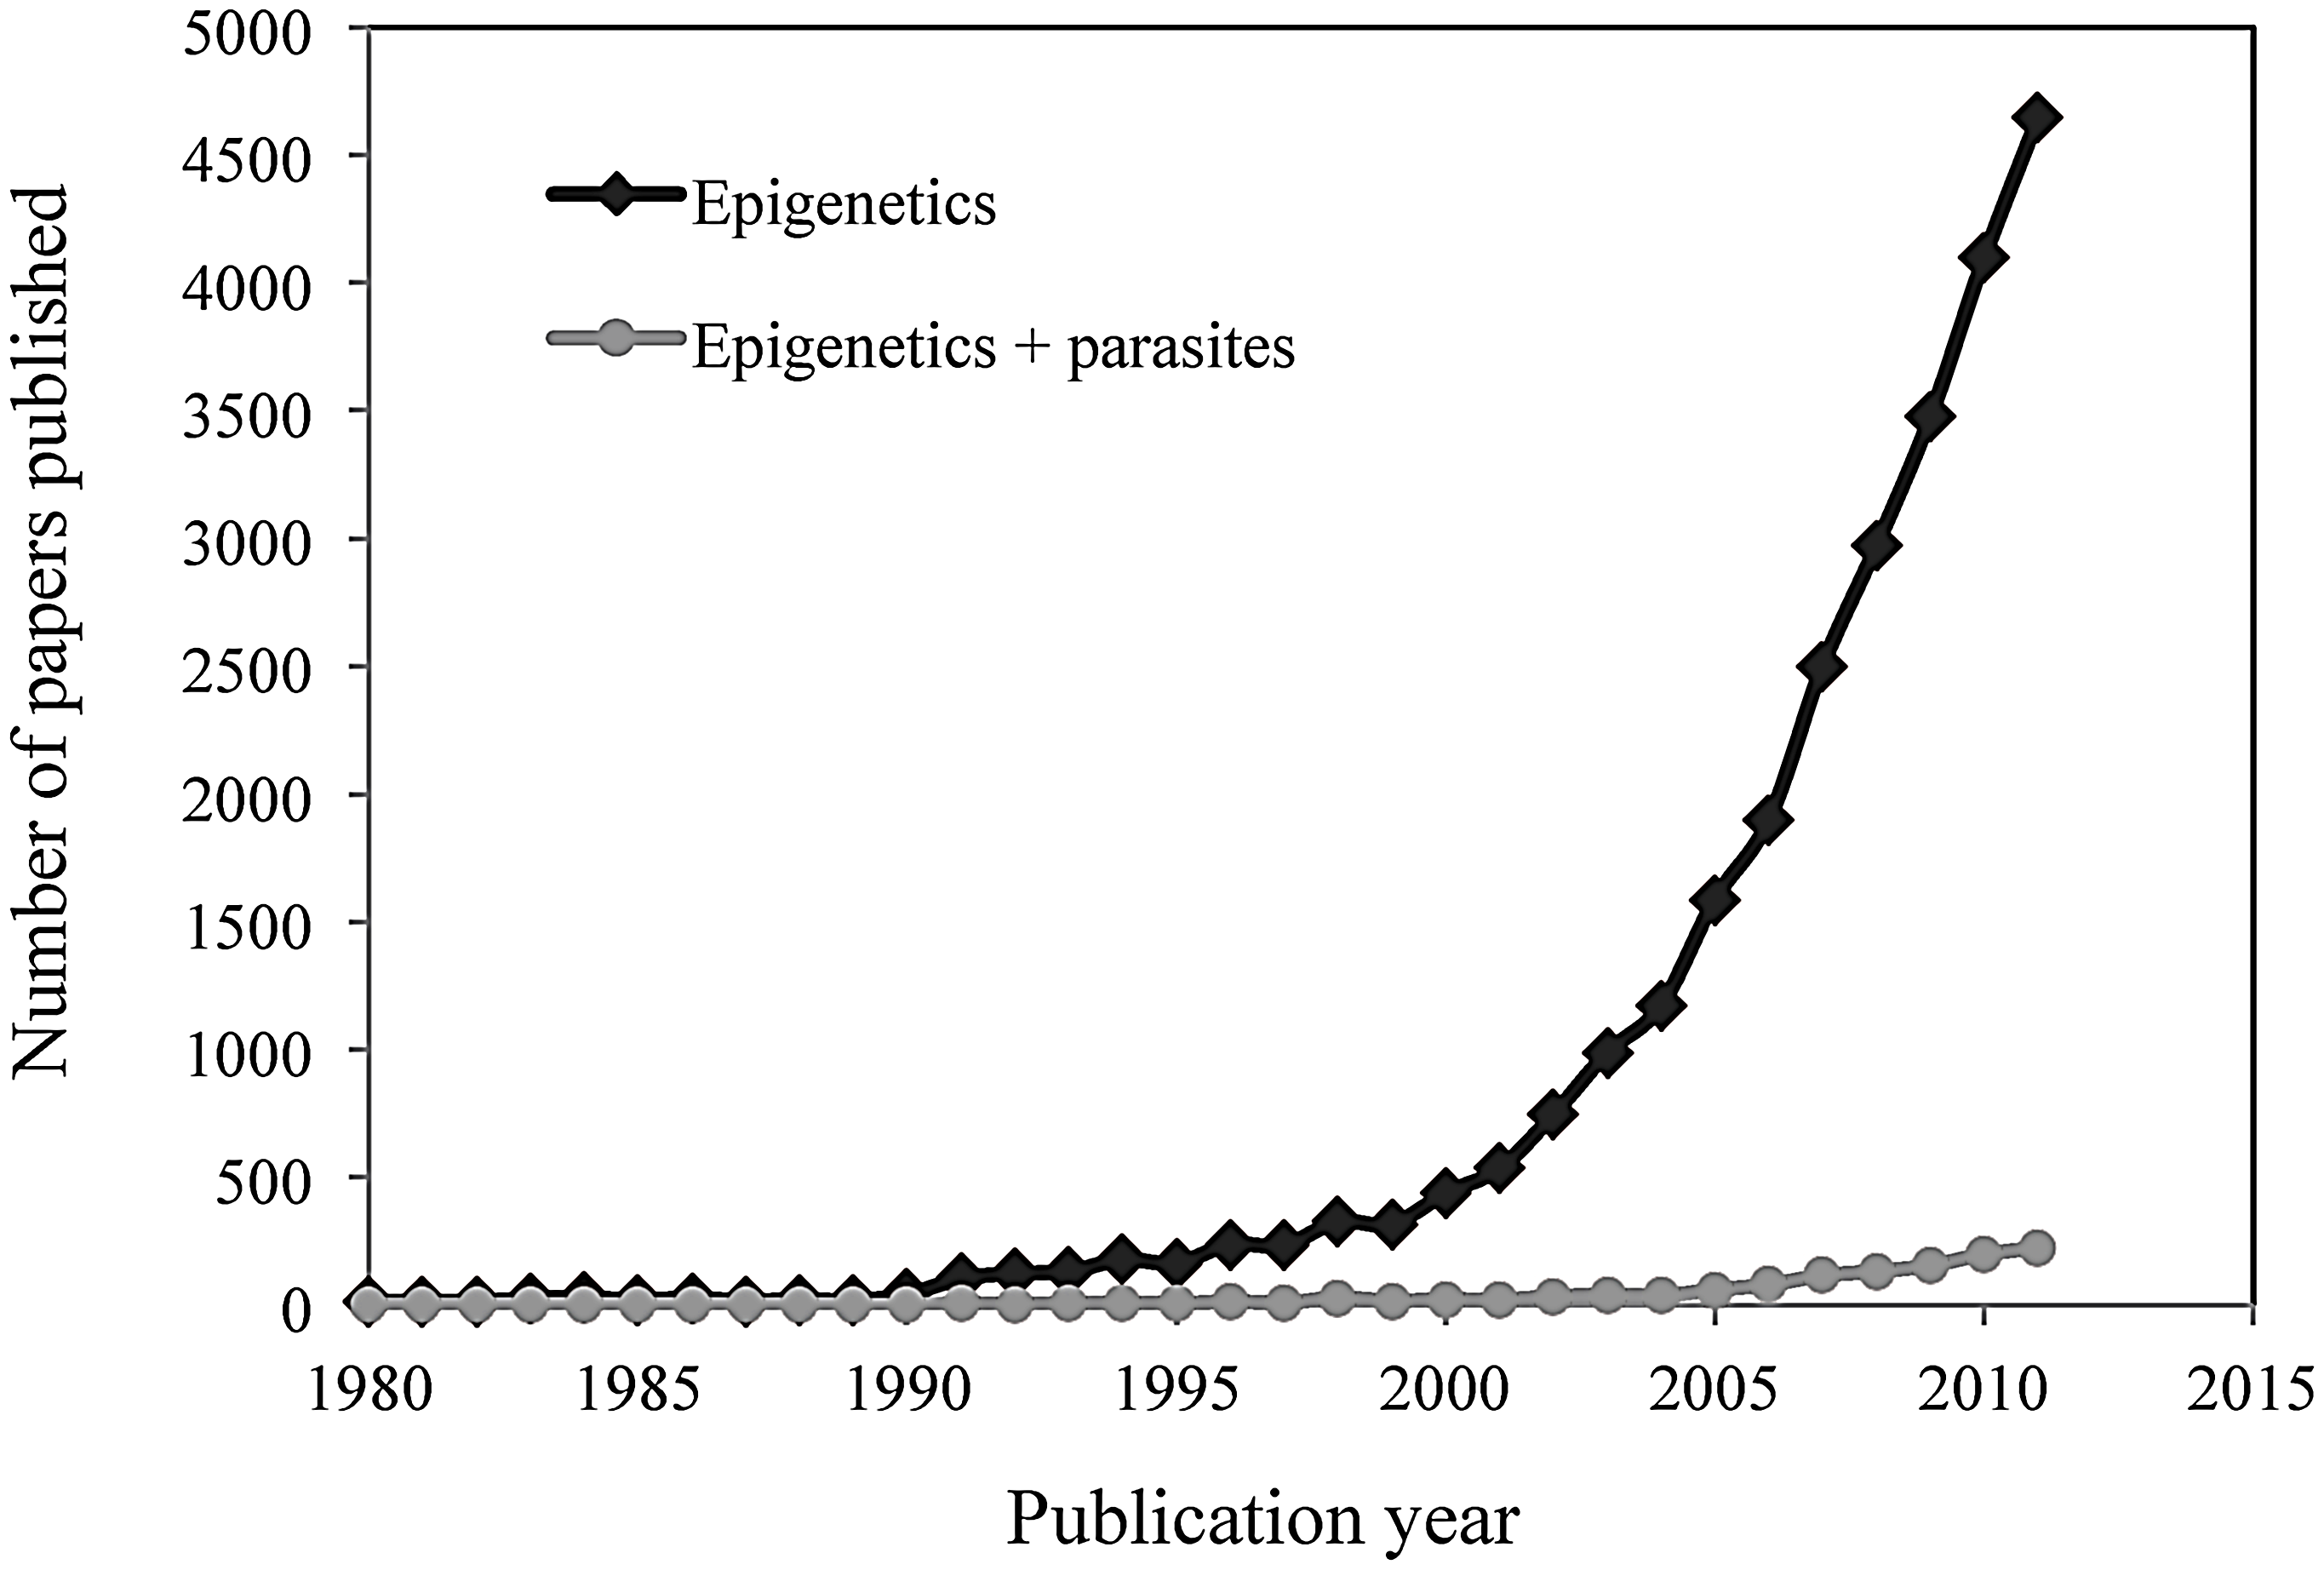 Comparison between the overall number of science citation-indexed publications in the field of epigenetics (black dots) and the number of such publications in the field of host–pathogen interactions (grey dots) over the last 30 years (1980 to 2011).